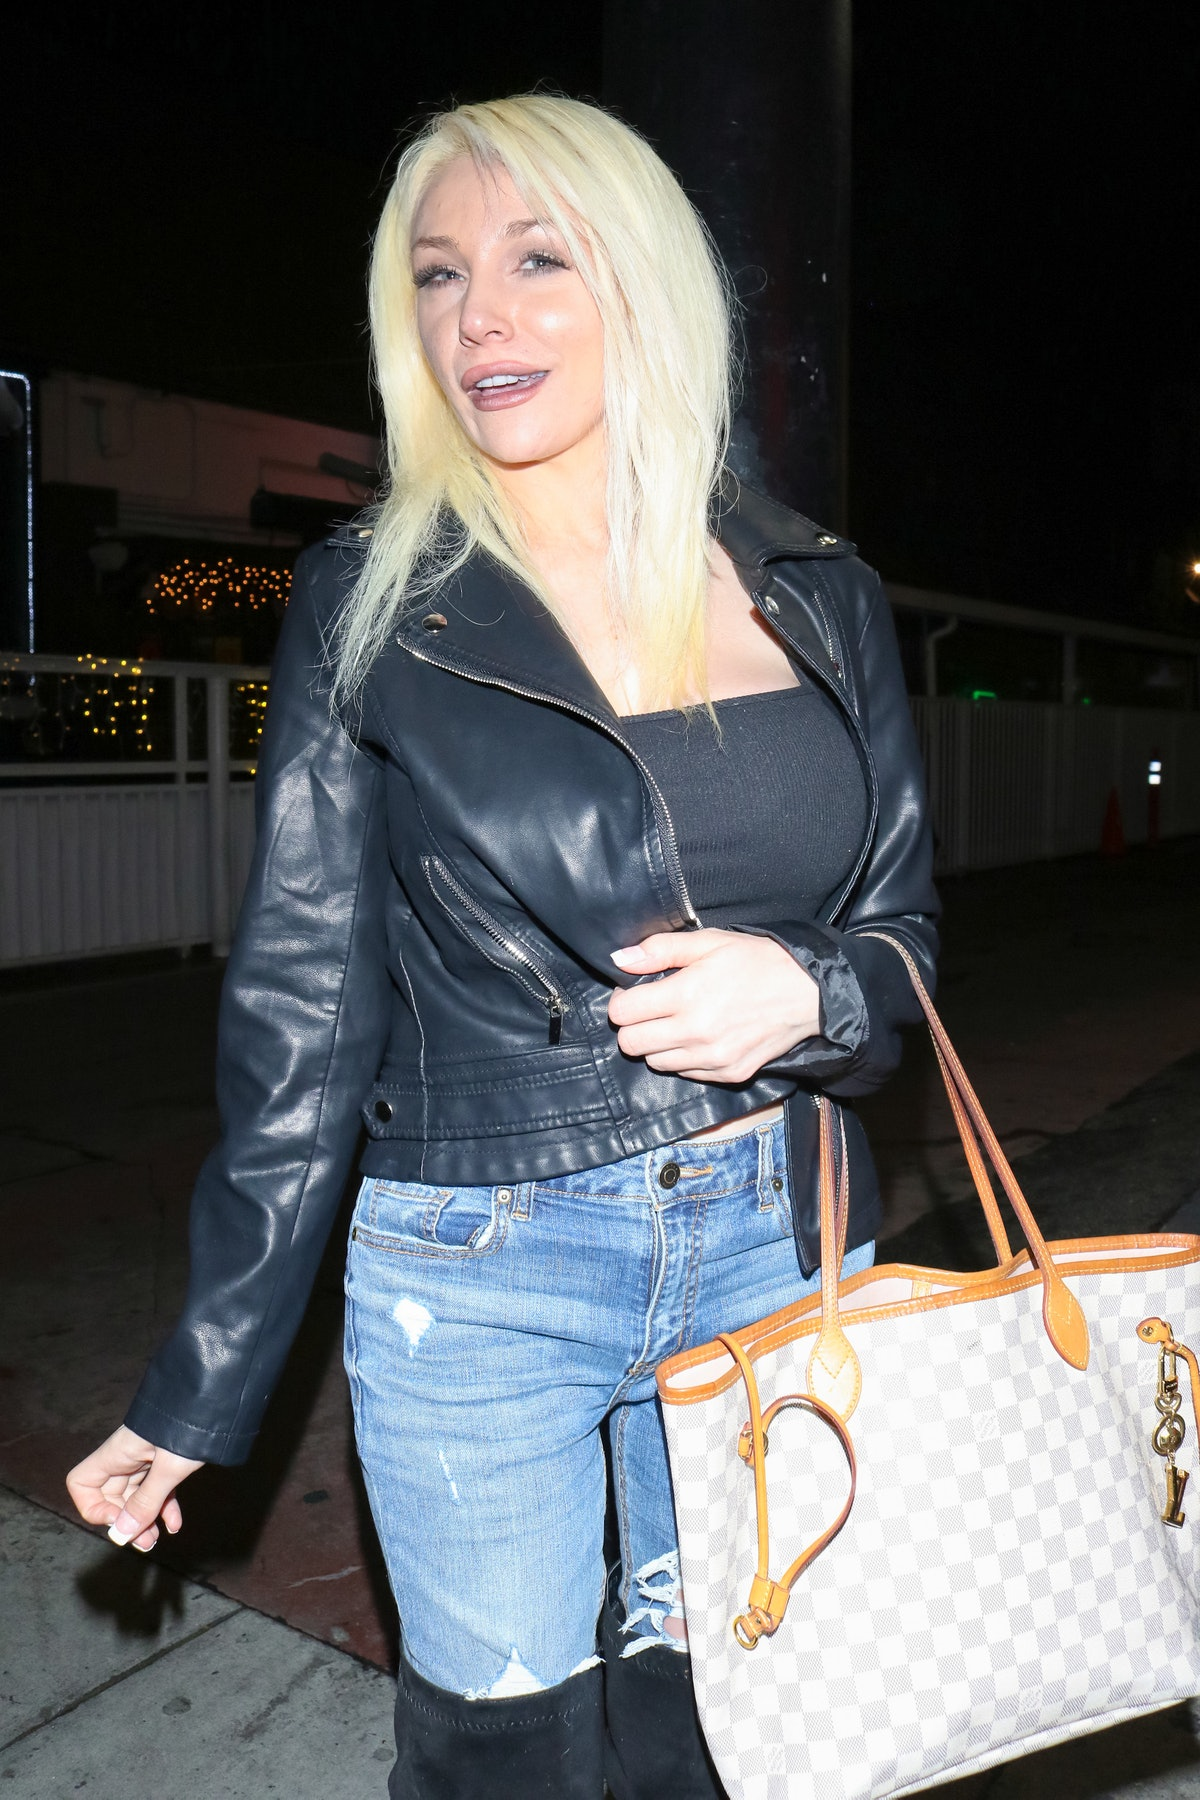 LOS ANGELES, CA - MARCH 10: Courtney Stodden is seen on March 10, 2020 in Los Angeles, California.  ...